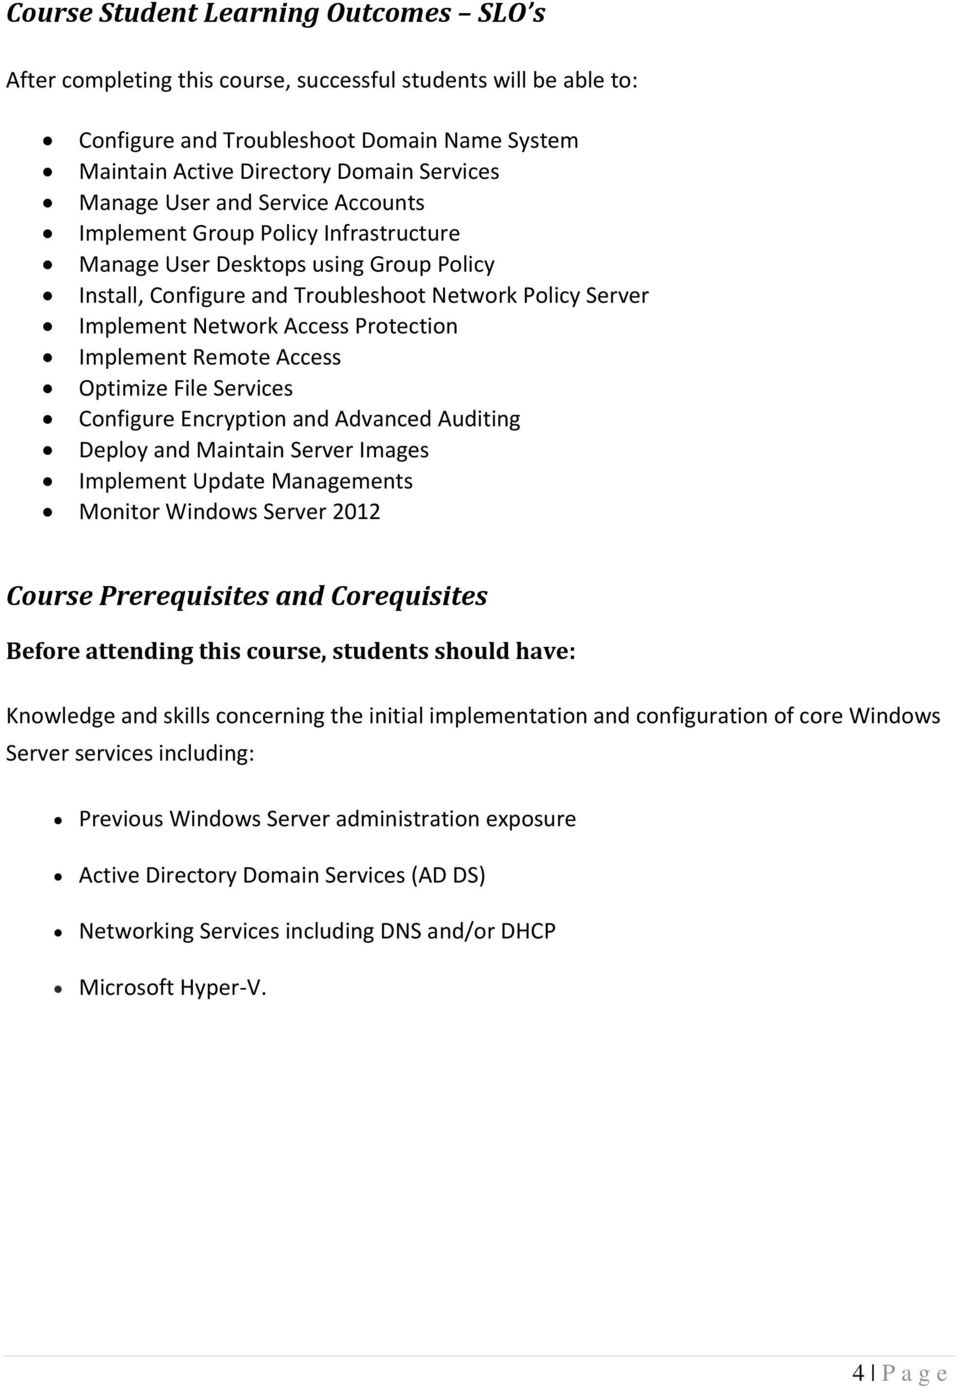 Syllabus  Computer Science Information Technology 983